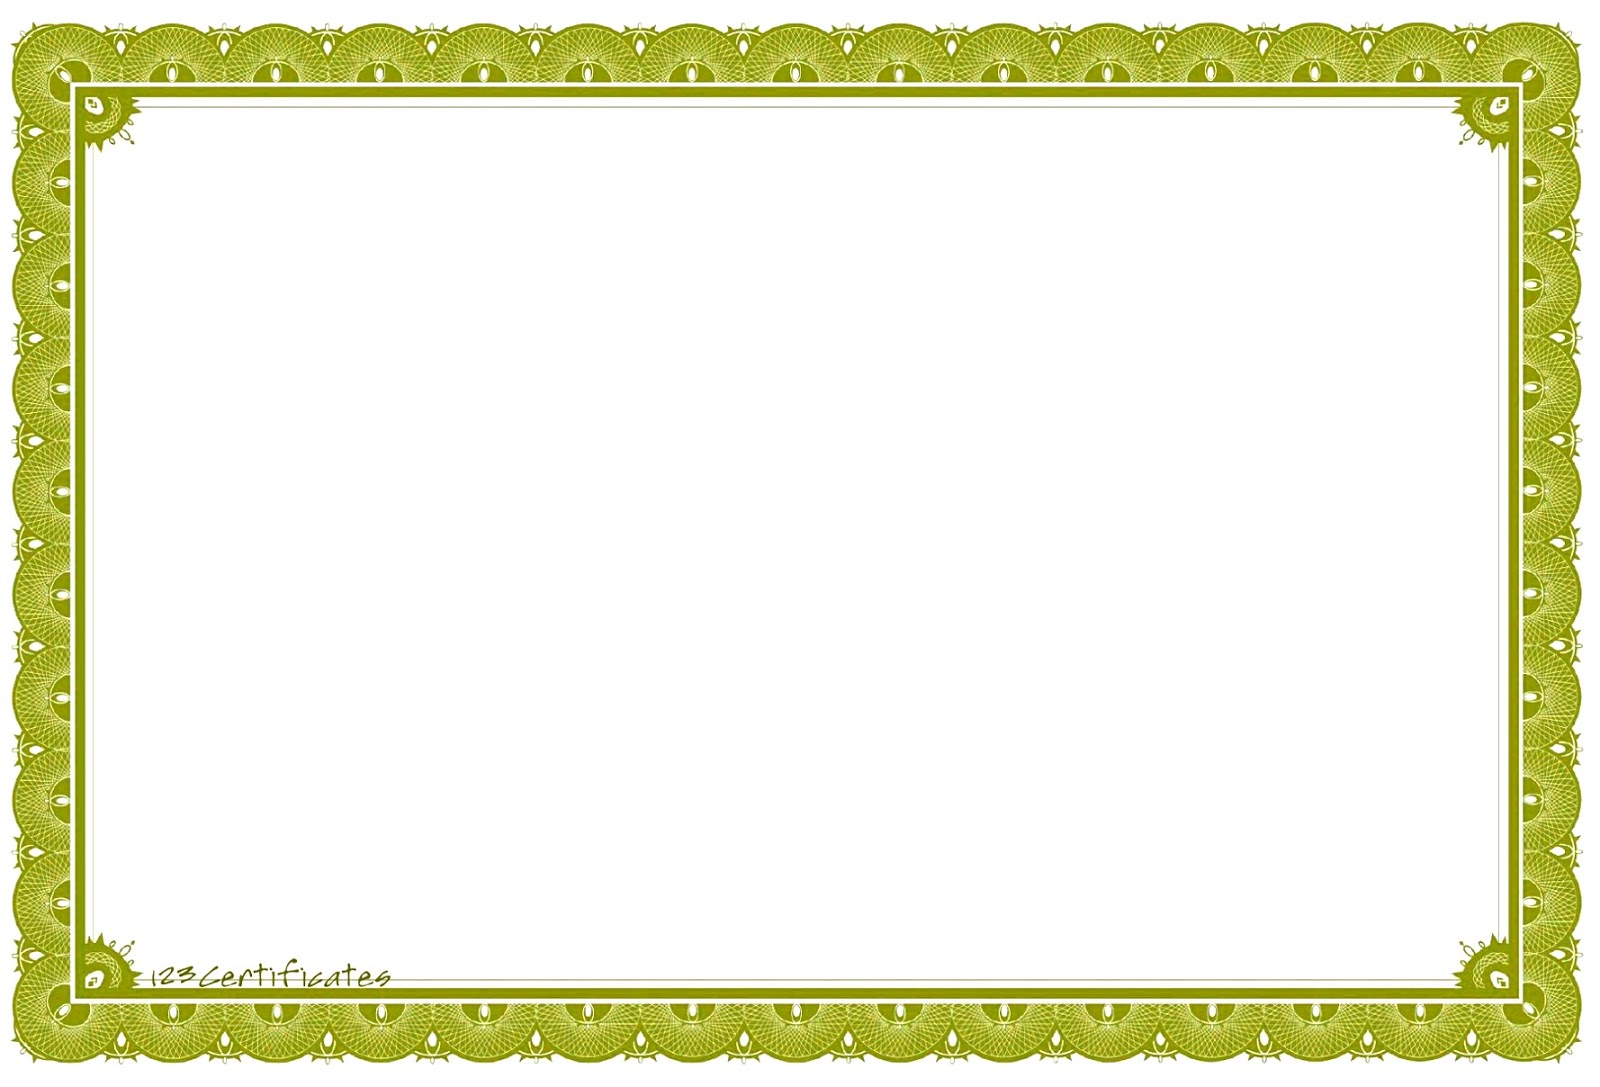 certificate border examples